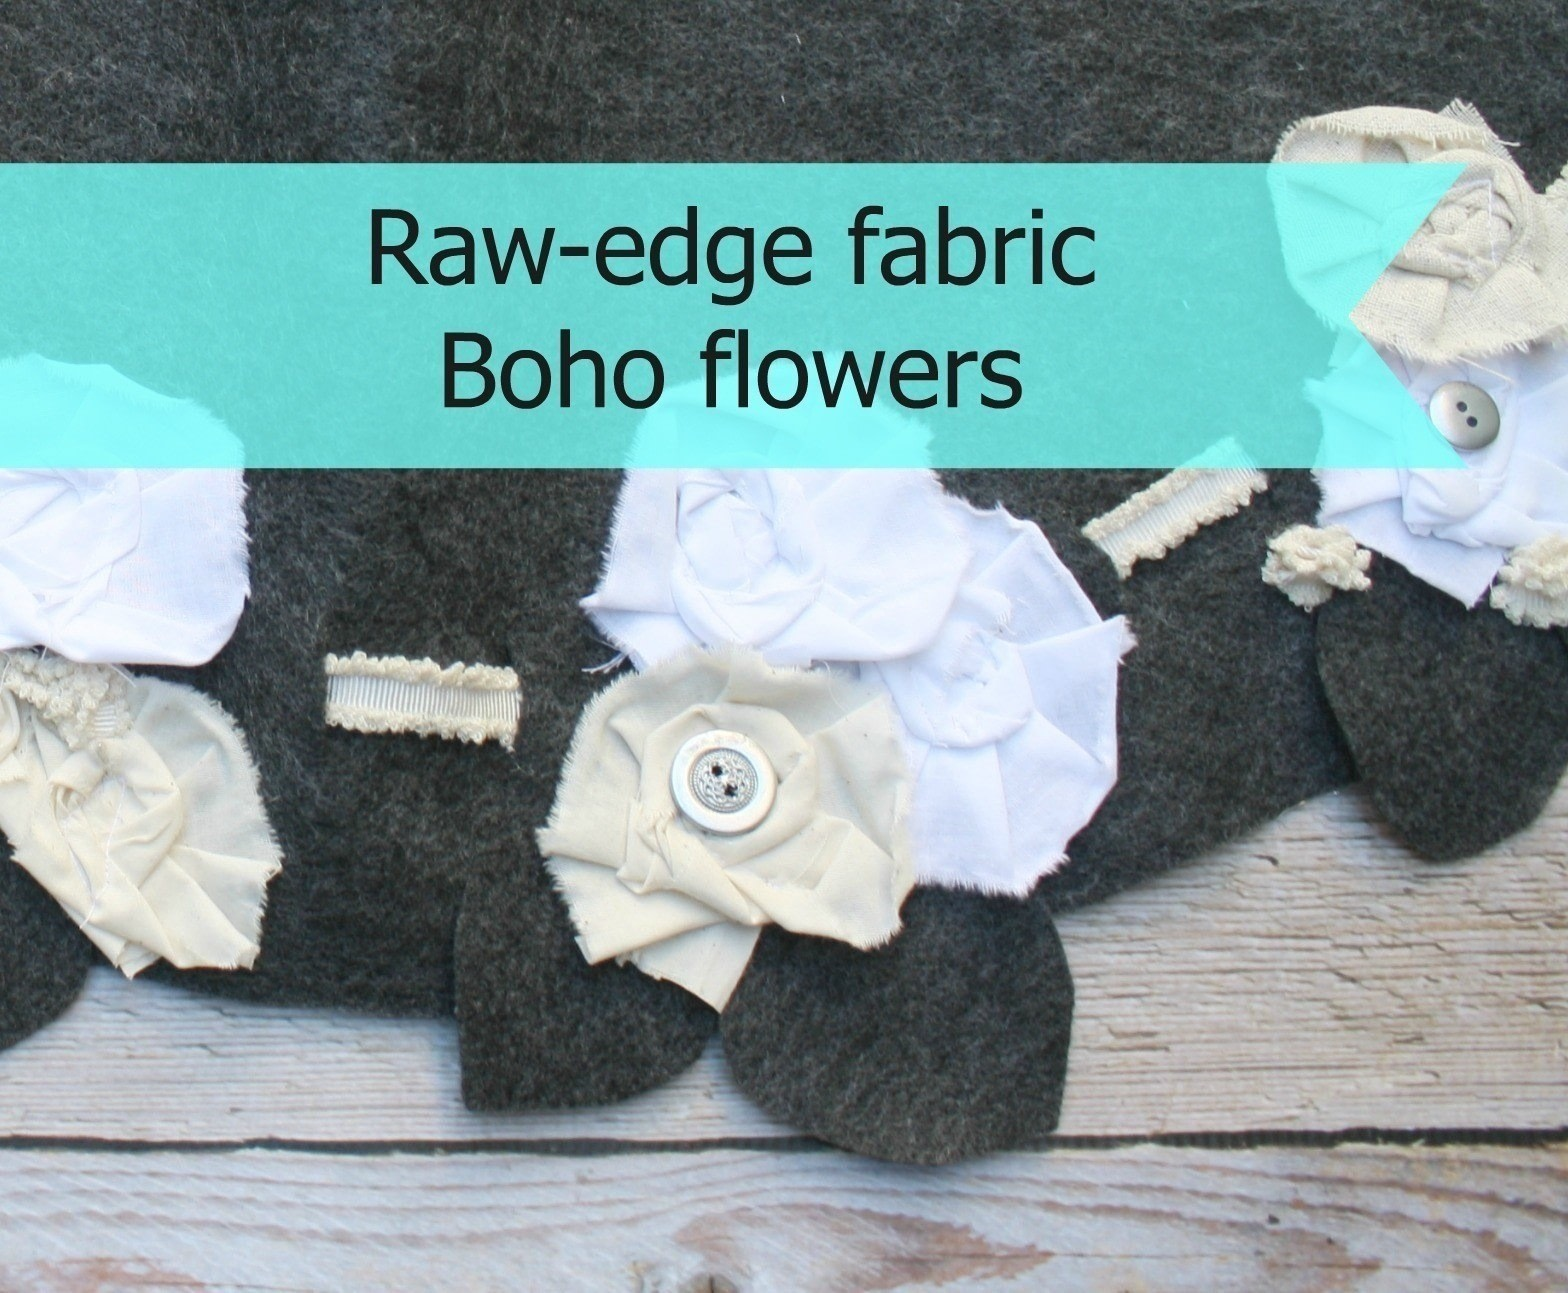 Boho fabric flowers how to sew a fabric flower charm sewing on funky little raw edge flowers used for embellishing almost anything free tutorial with izmirmasajfo